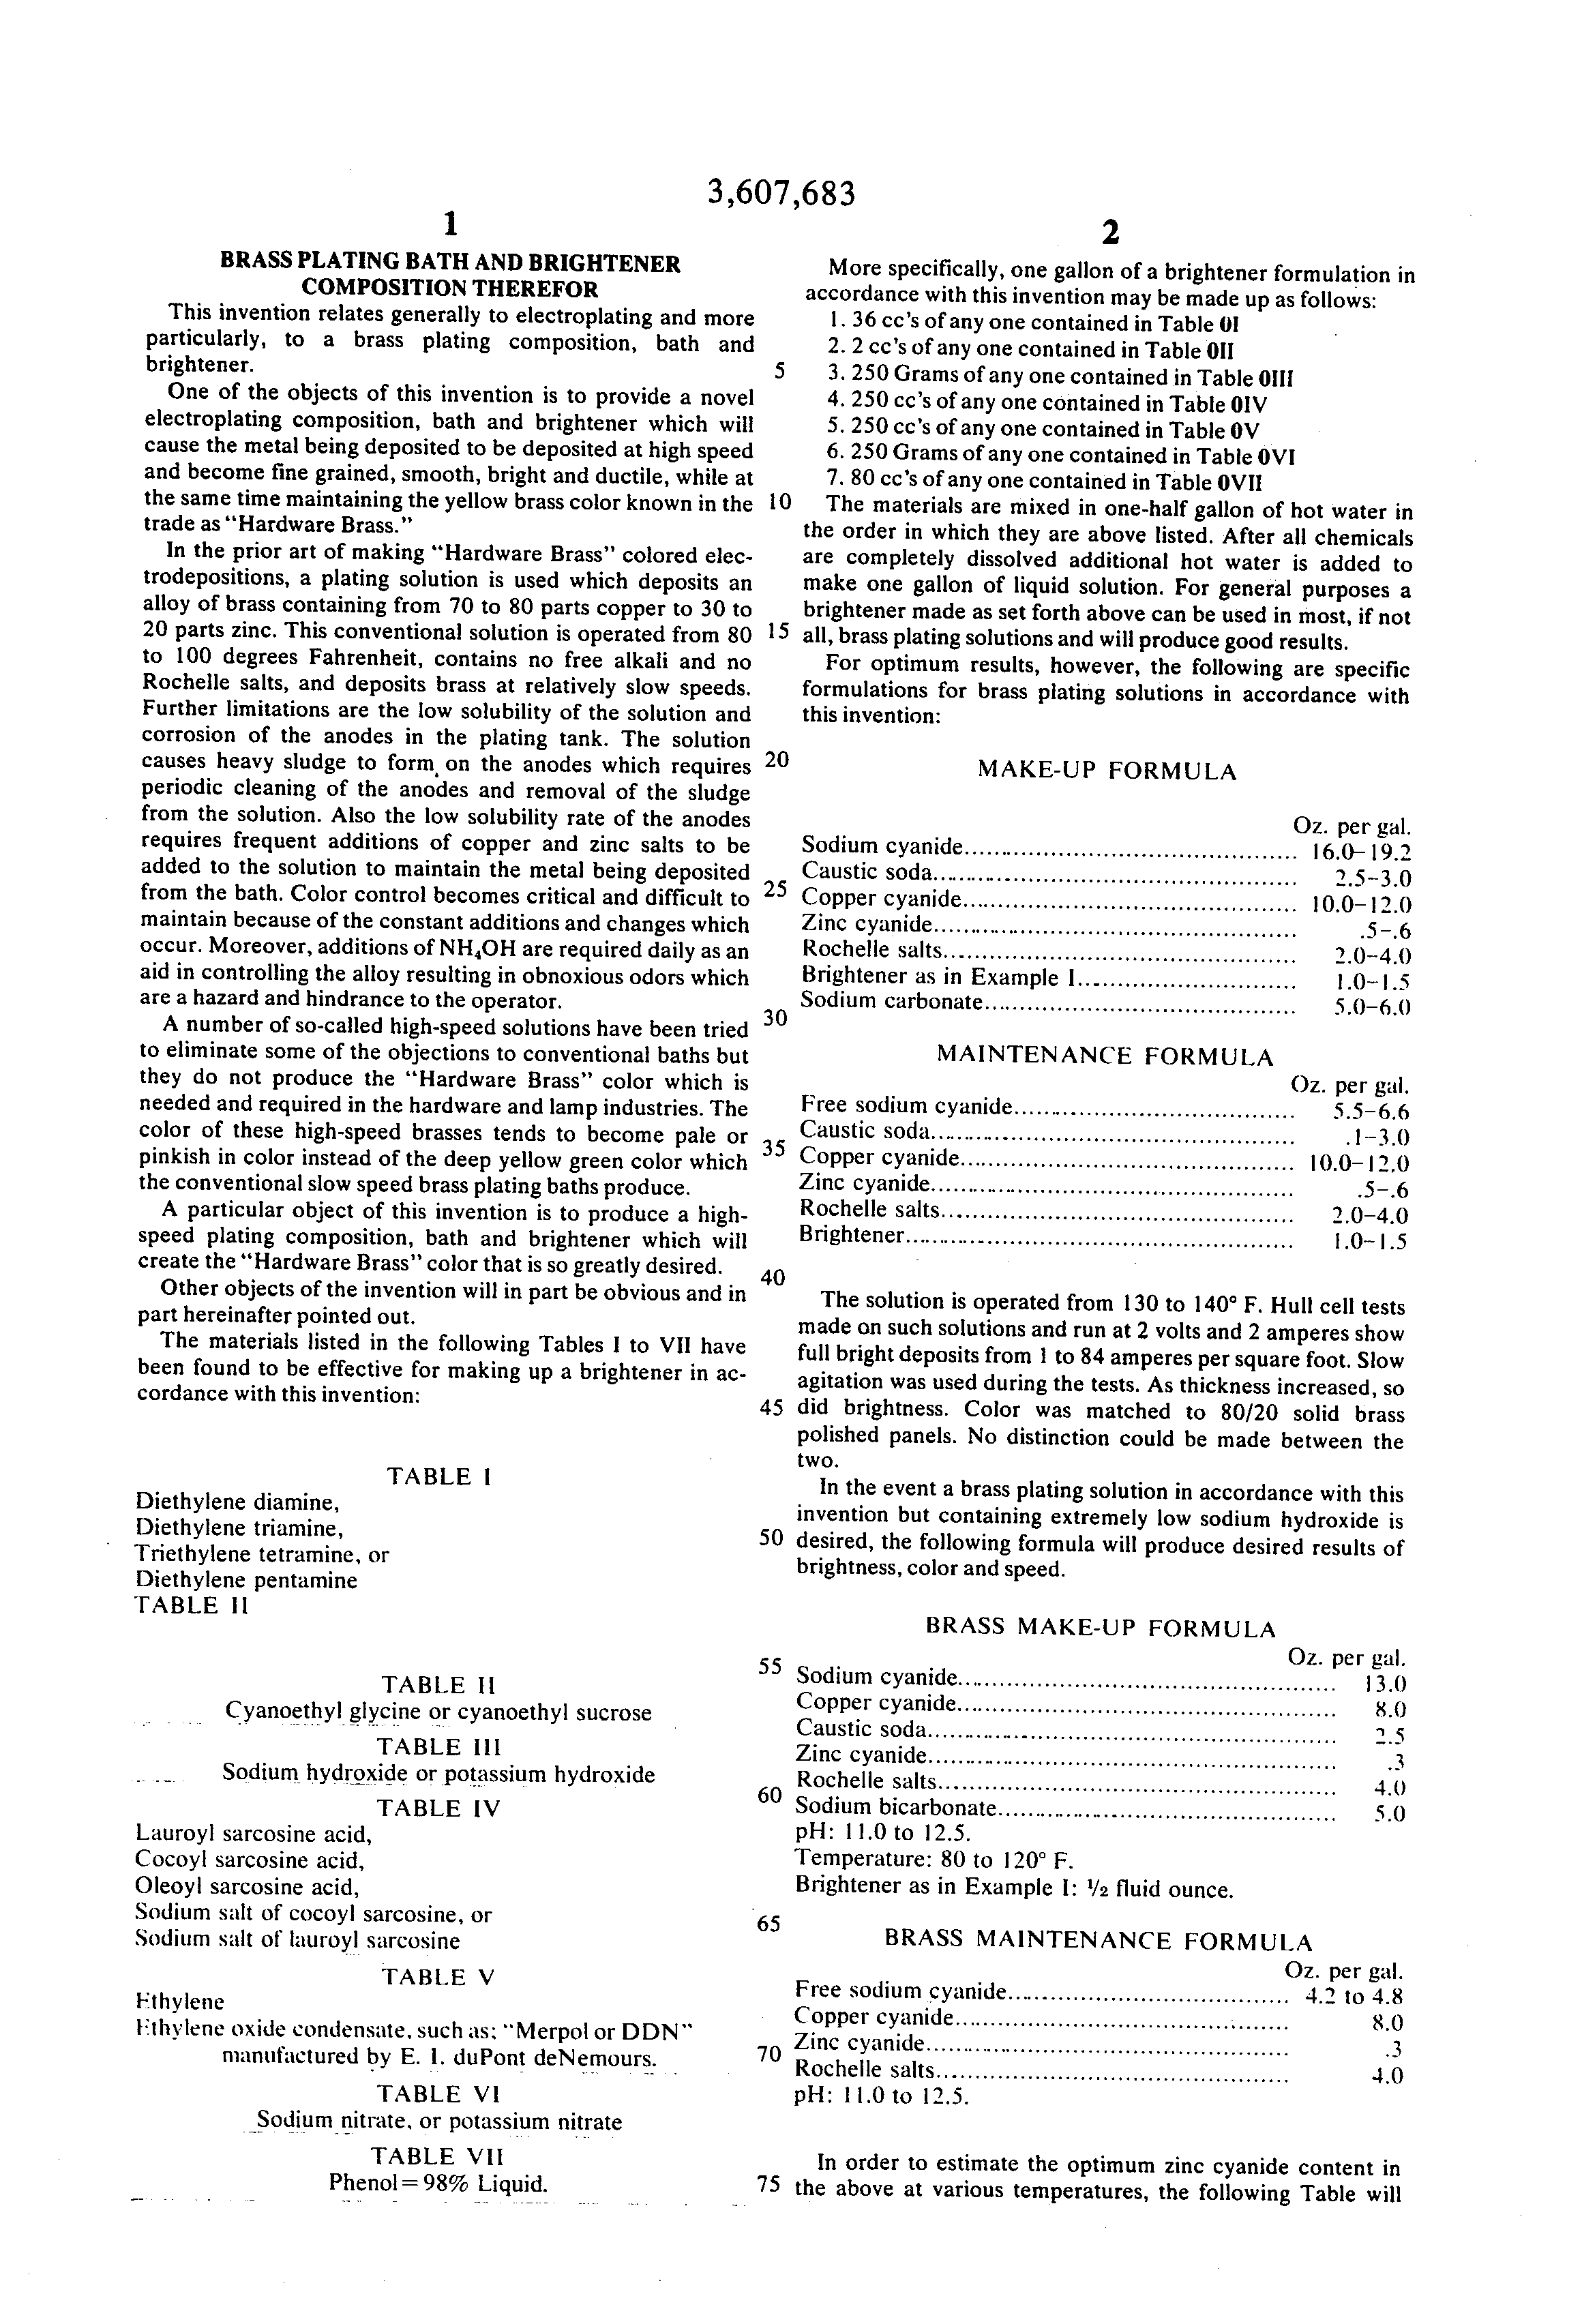 Patent US Brass plating bath and brightener position